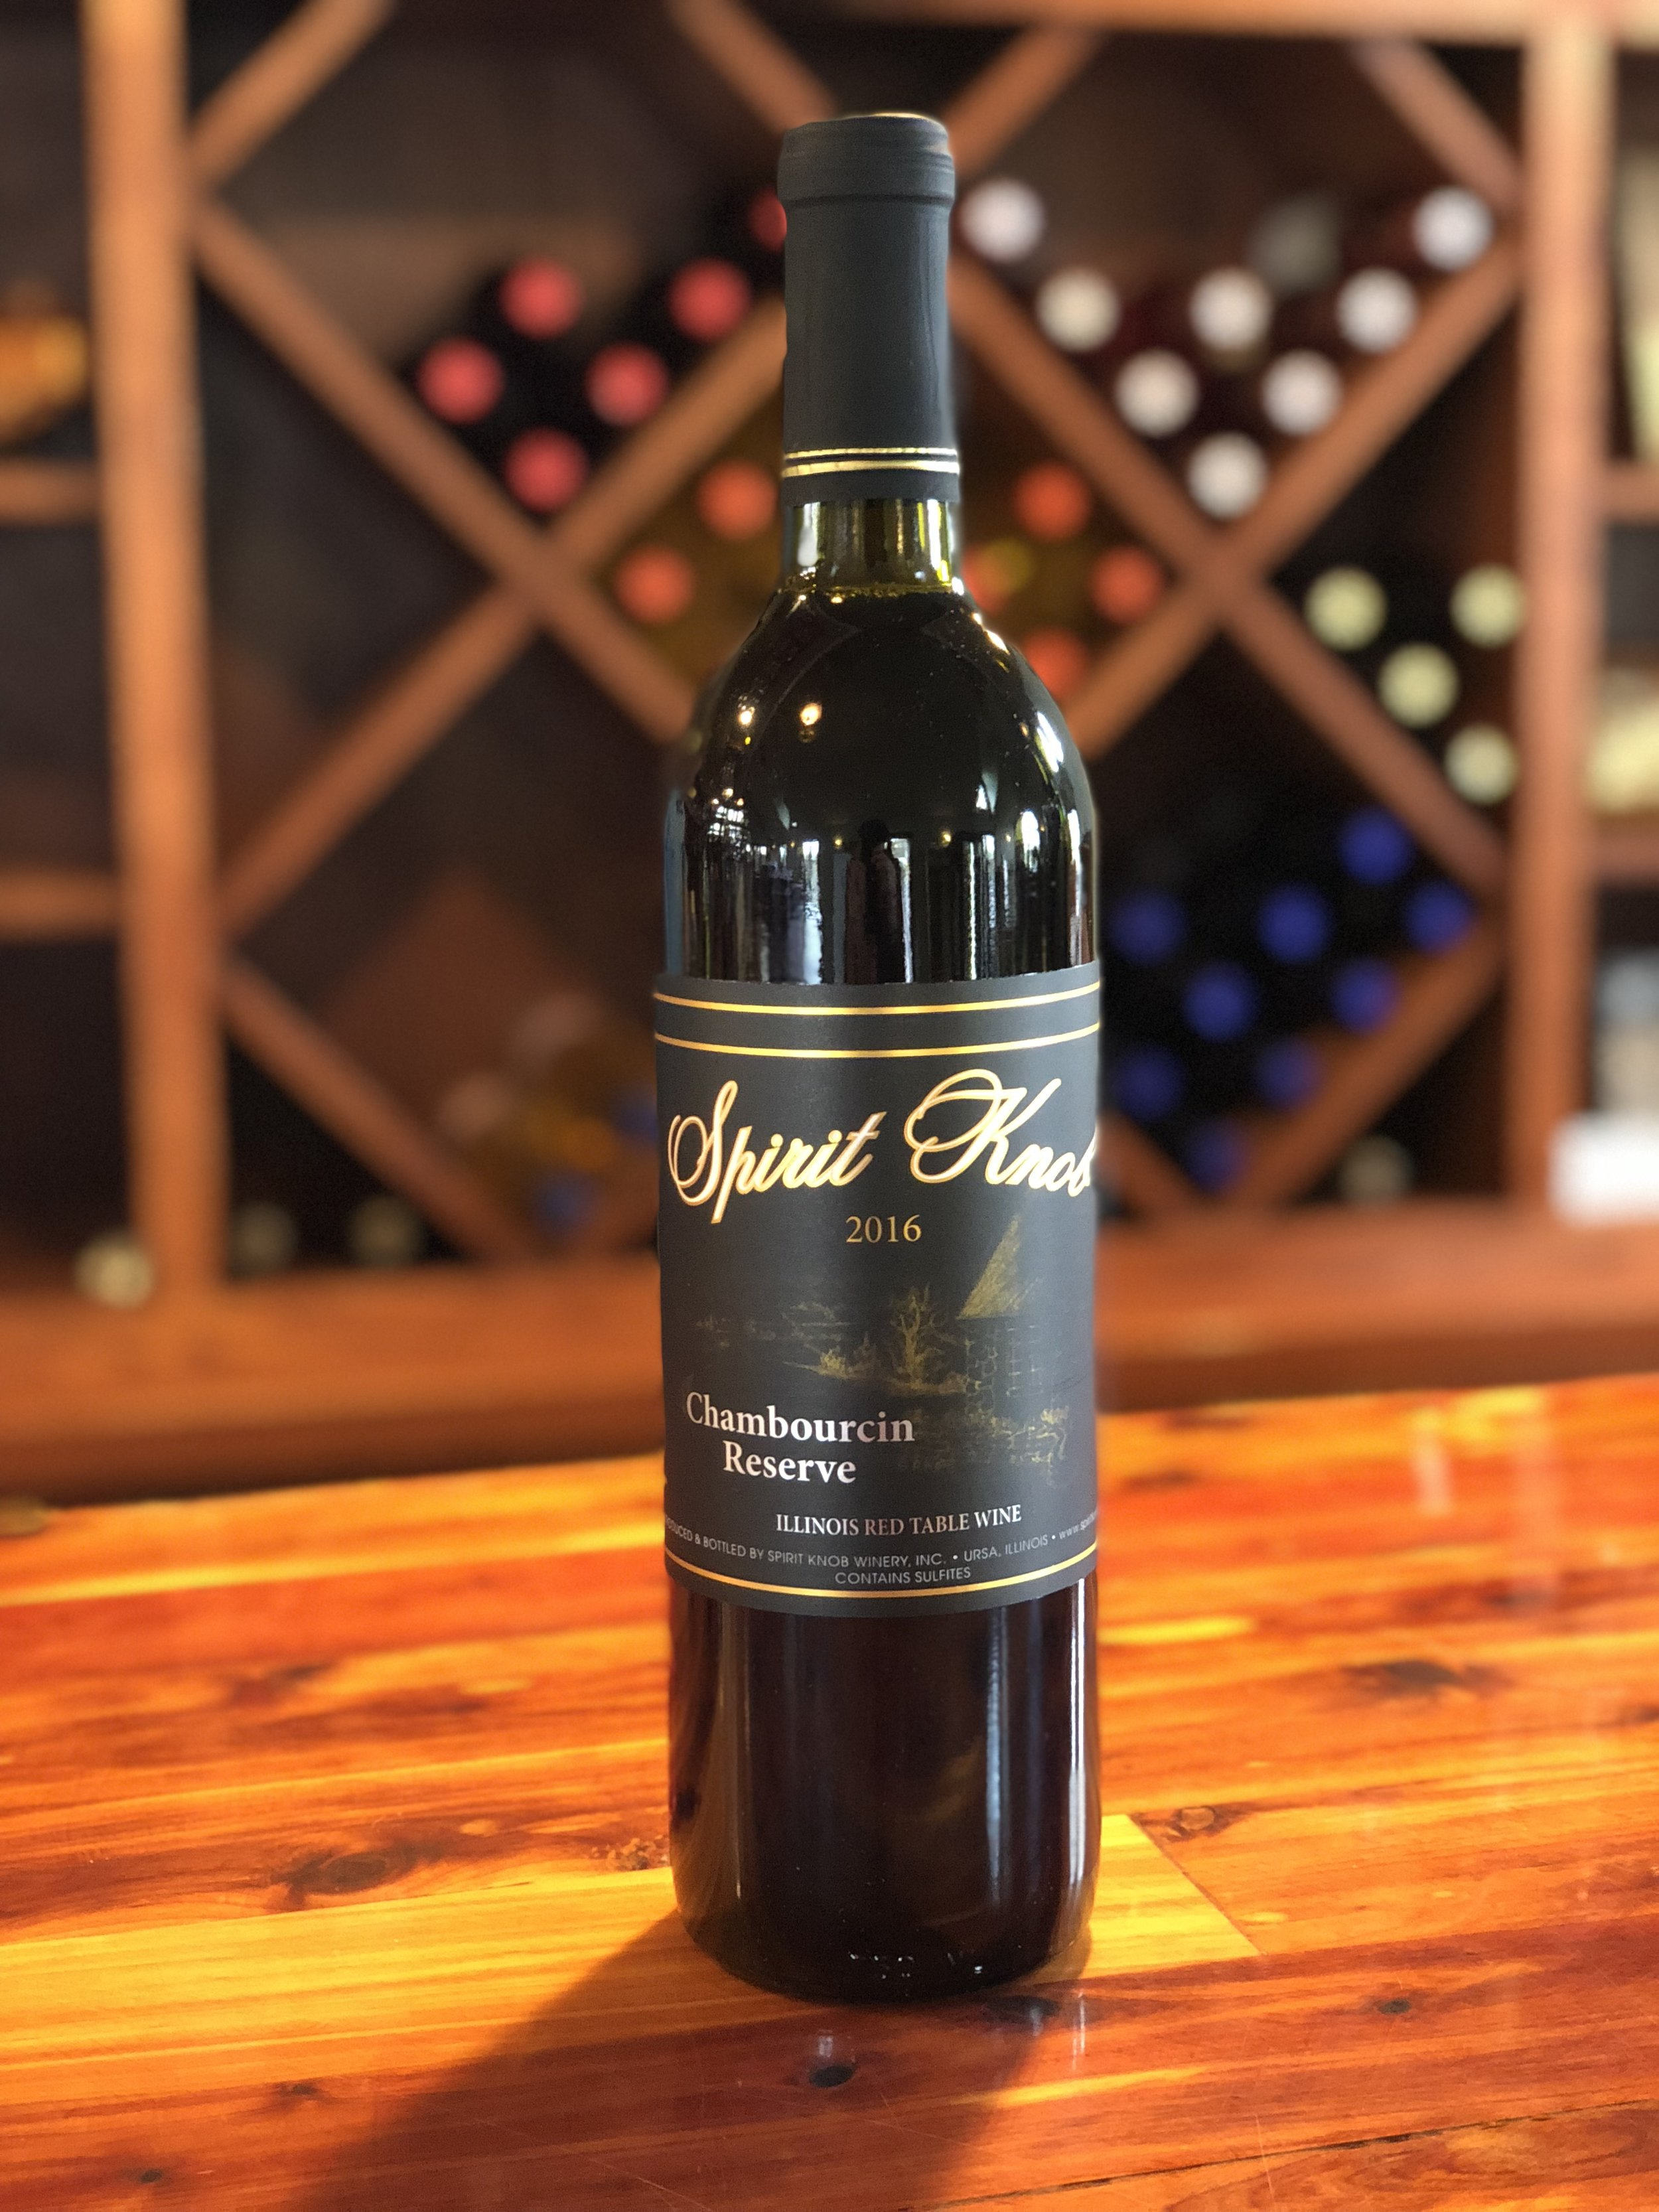 Chambourcin Reserve - A full-bodied oaky dry with flavors of cherry and raspberry. This particular wine ages very well.Click here to buy now!